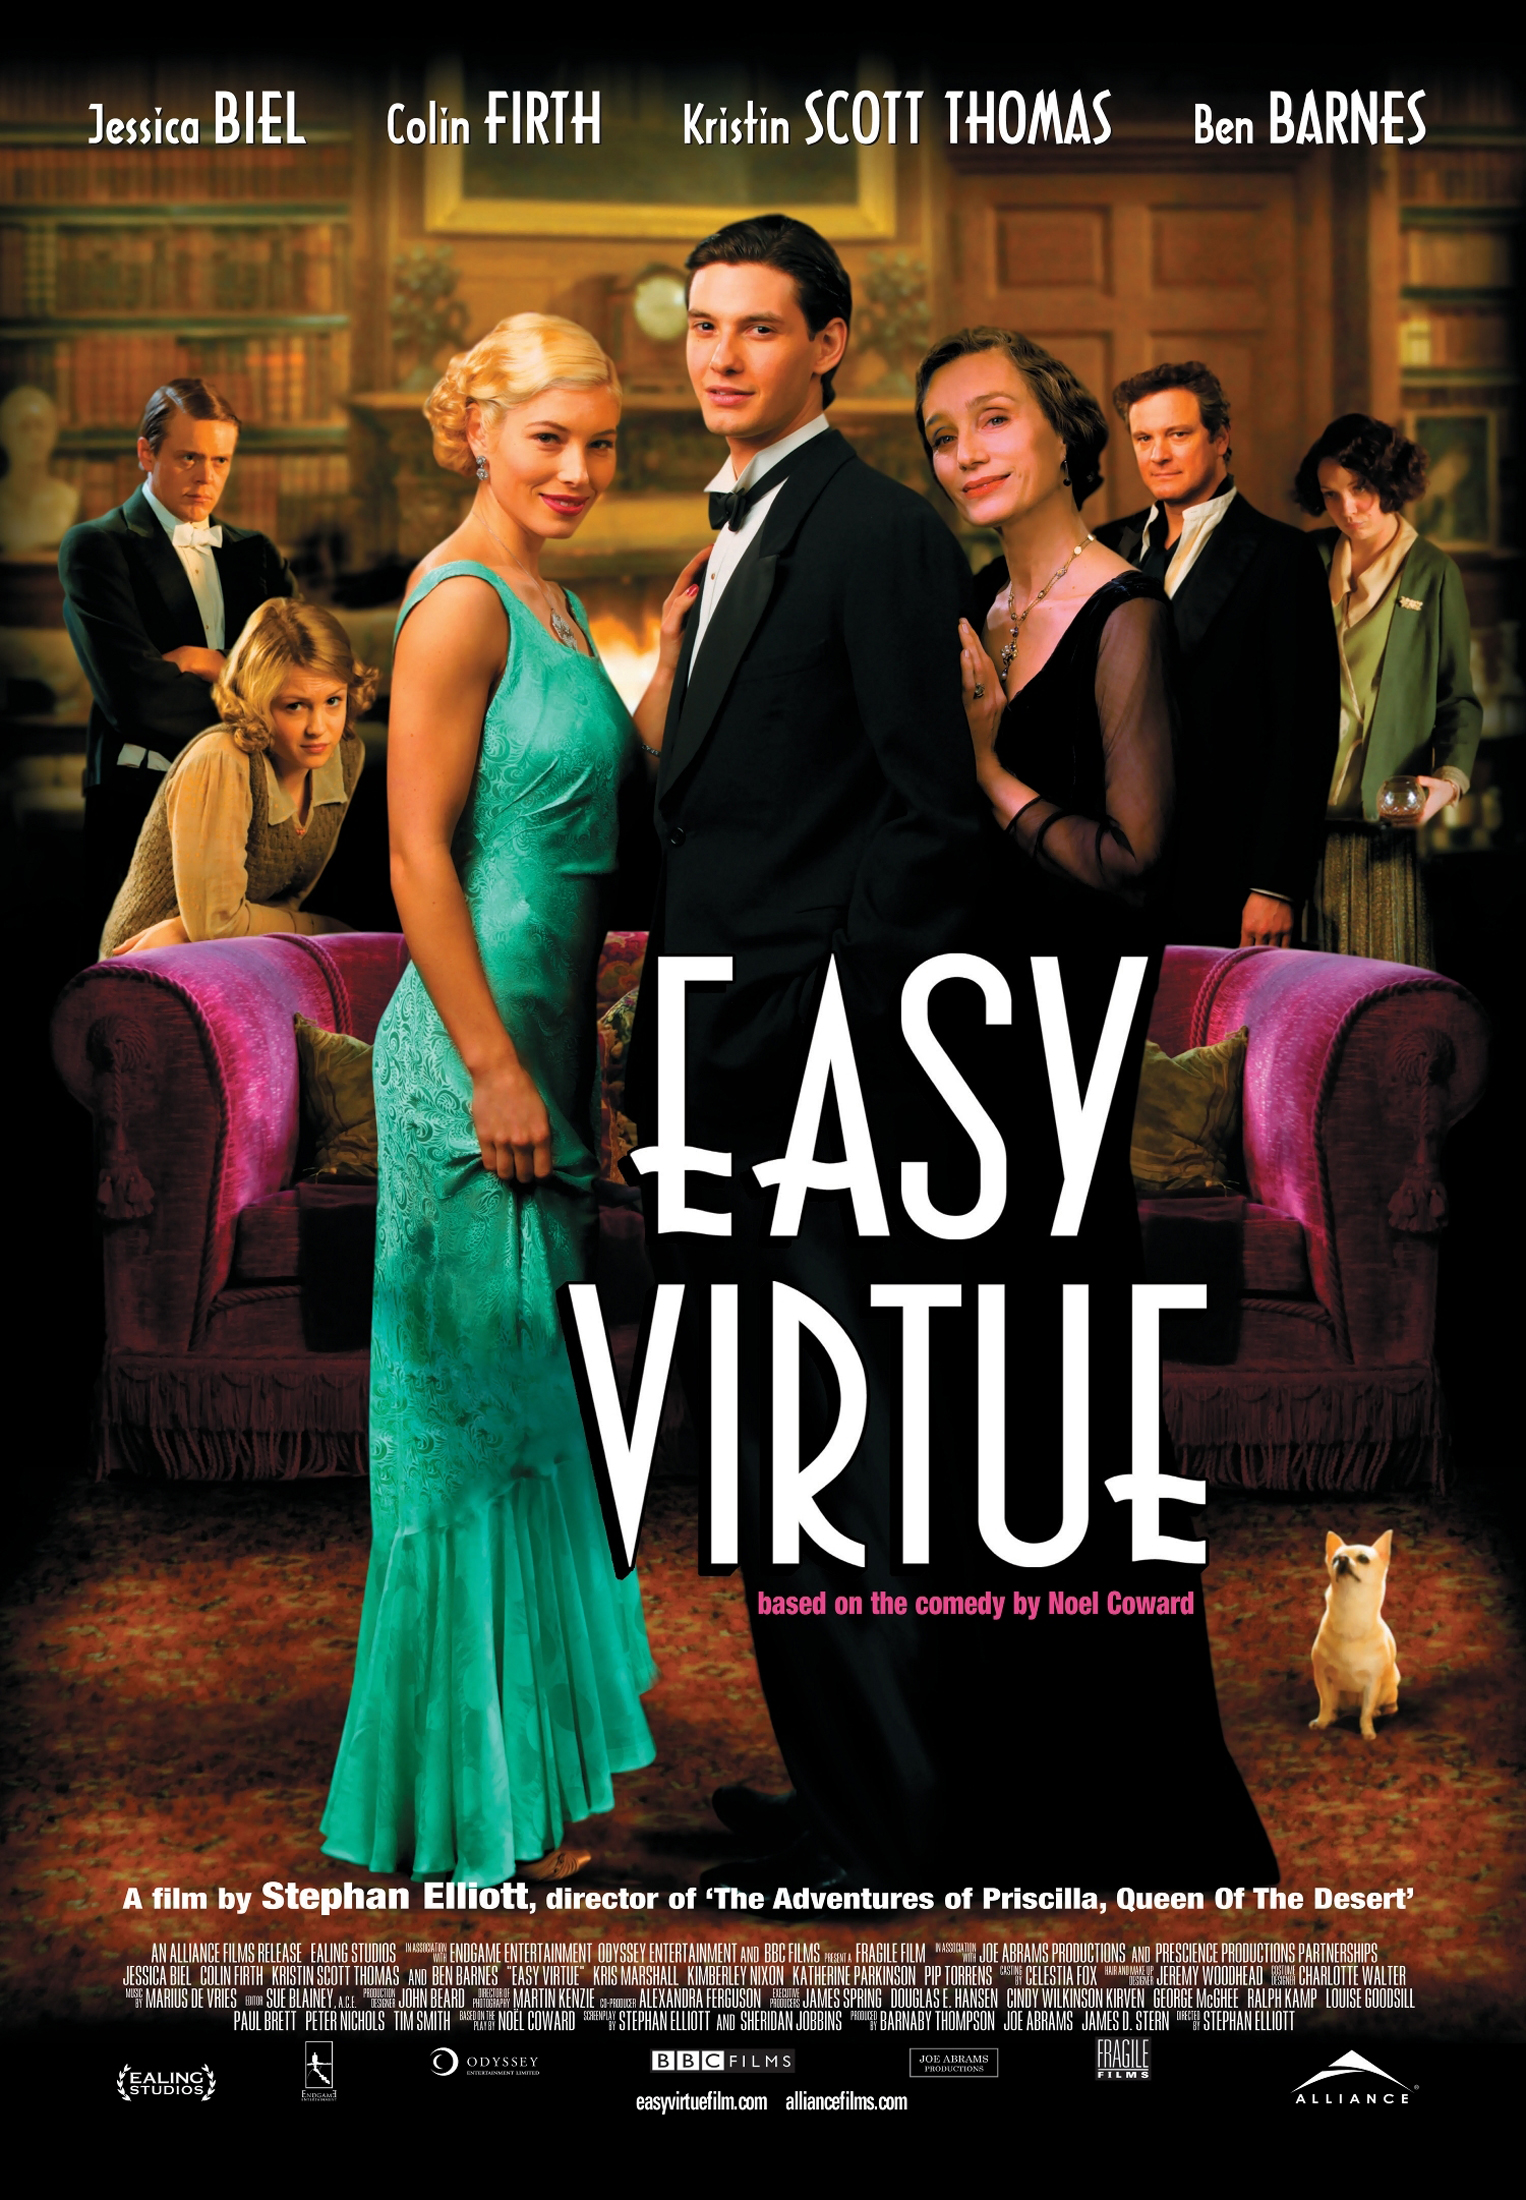 Easy Virtue (2008) Canadian poster